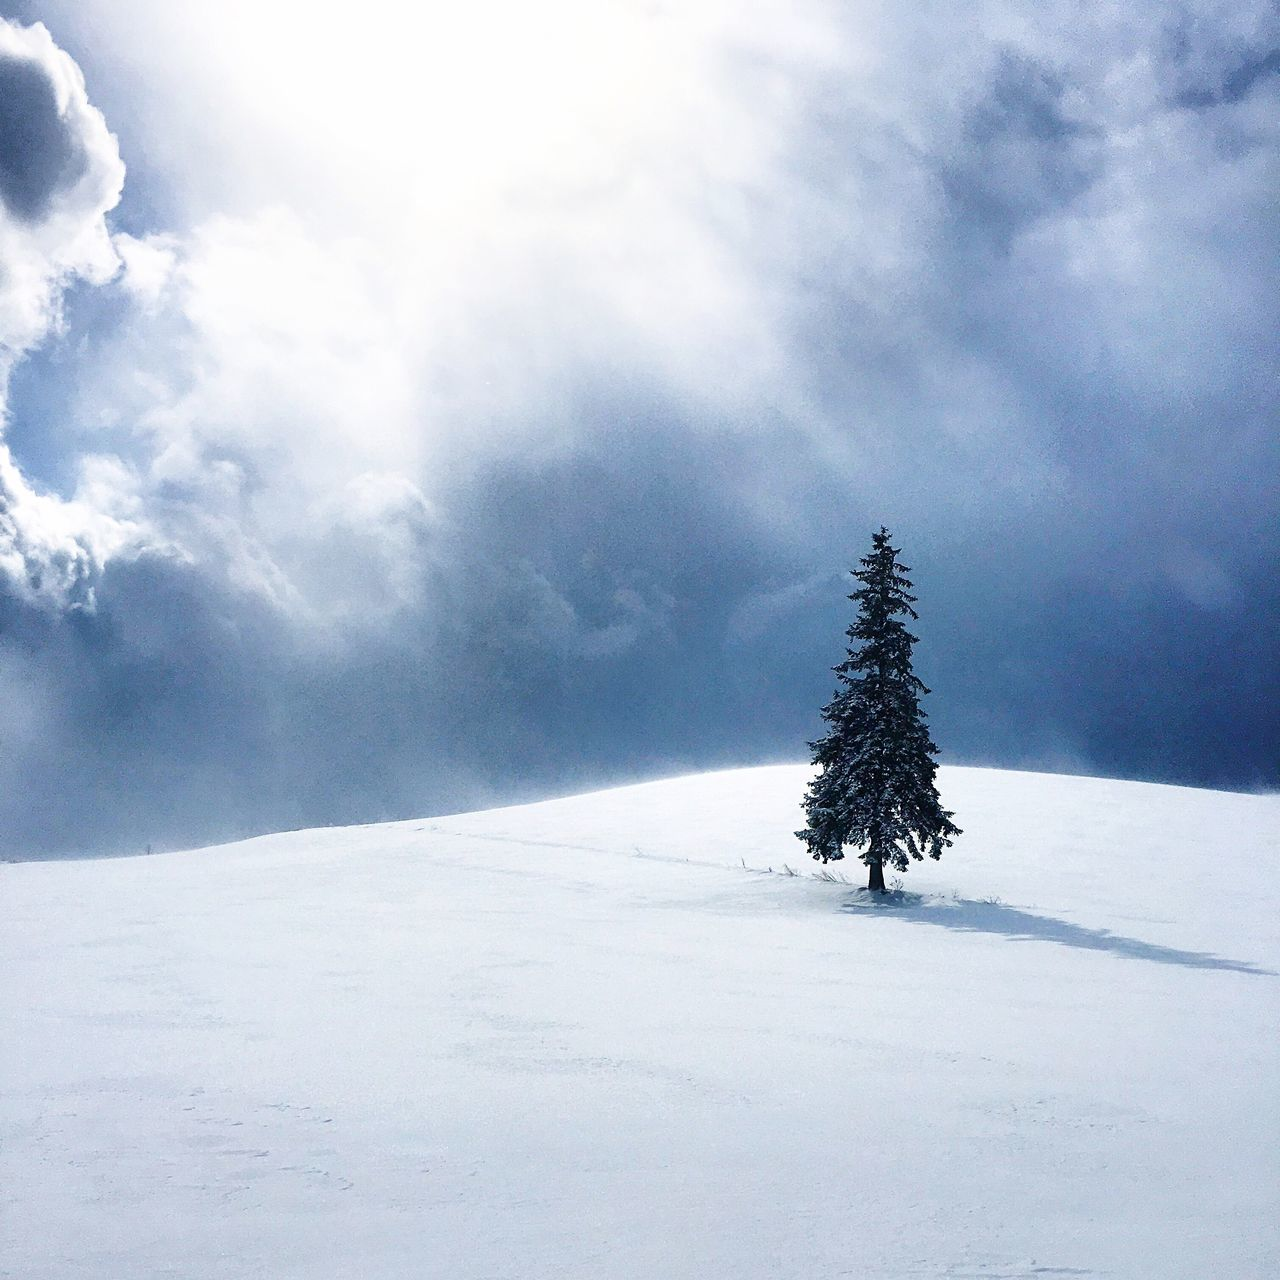 My Favorite Place Snow Cold Temperature Winter Tree Landscape Snow Covered White Single Tree Cold Beauty In Nature